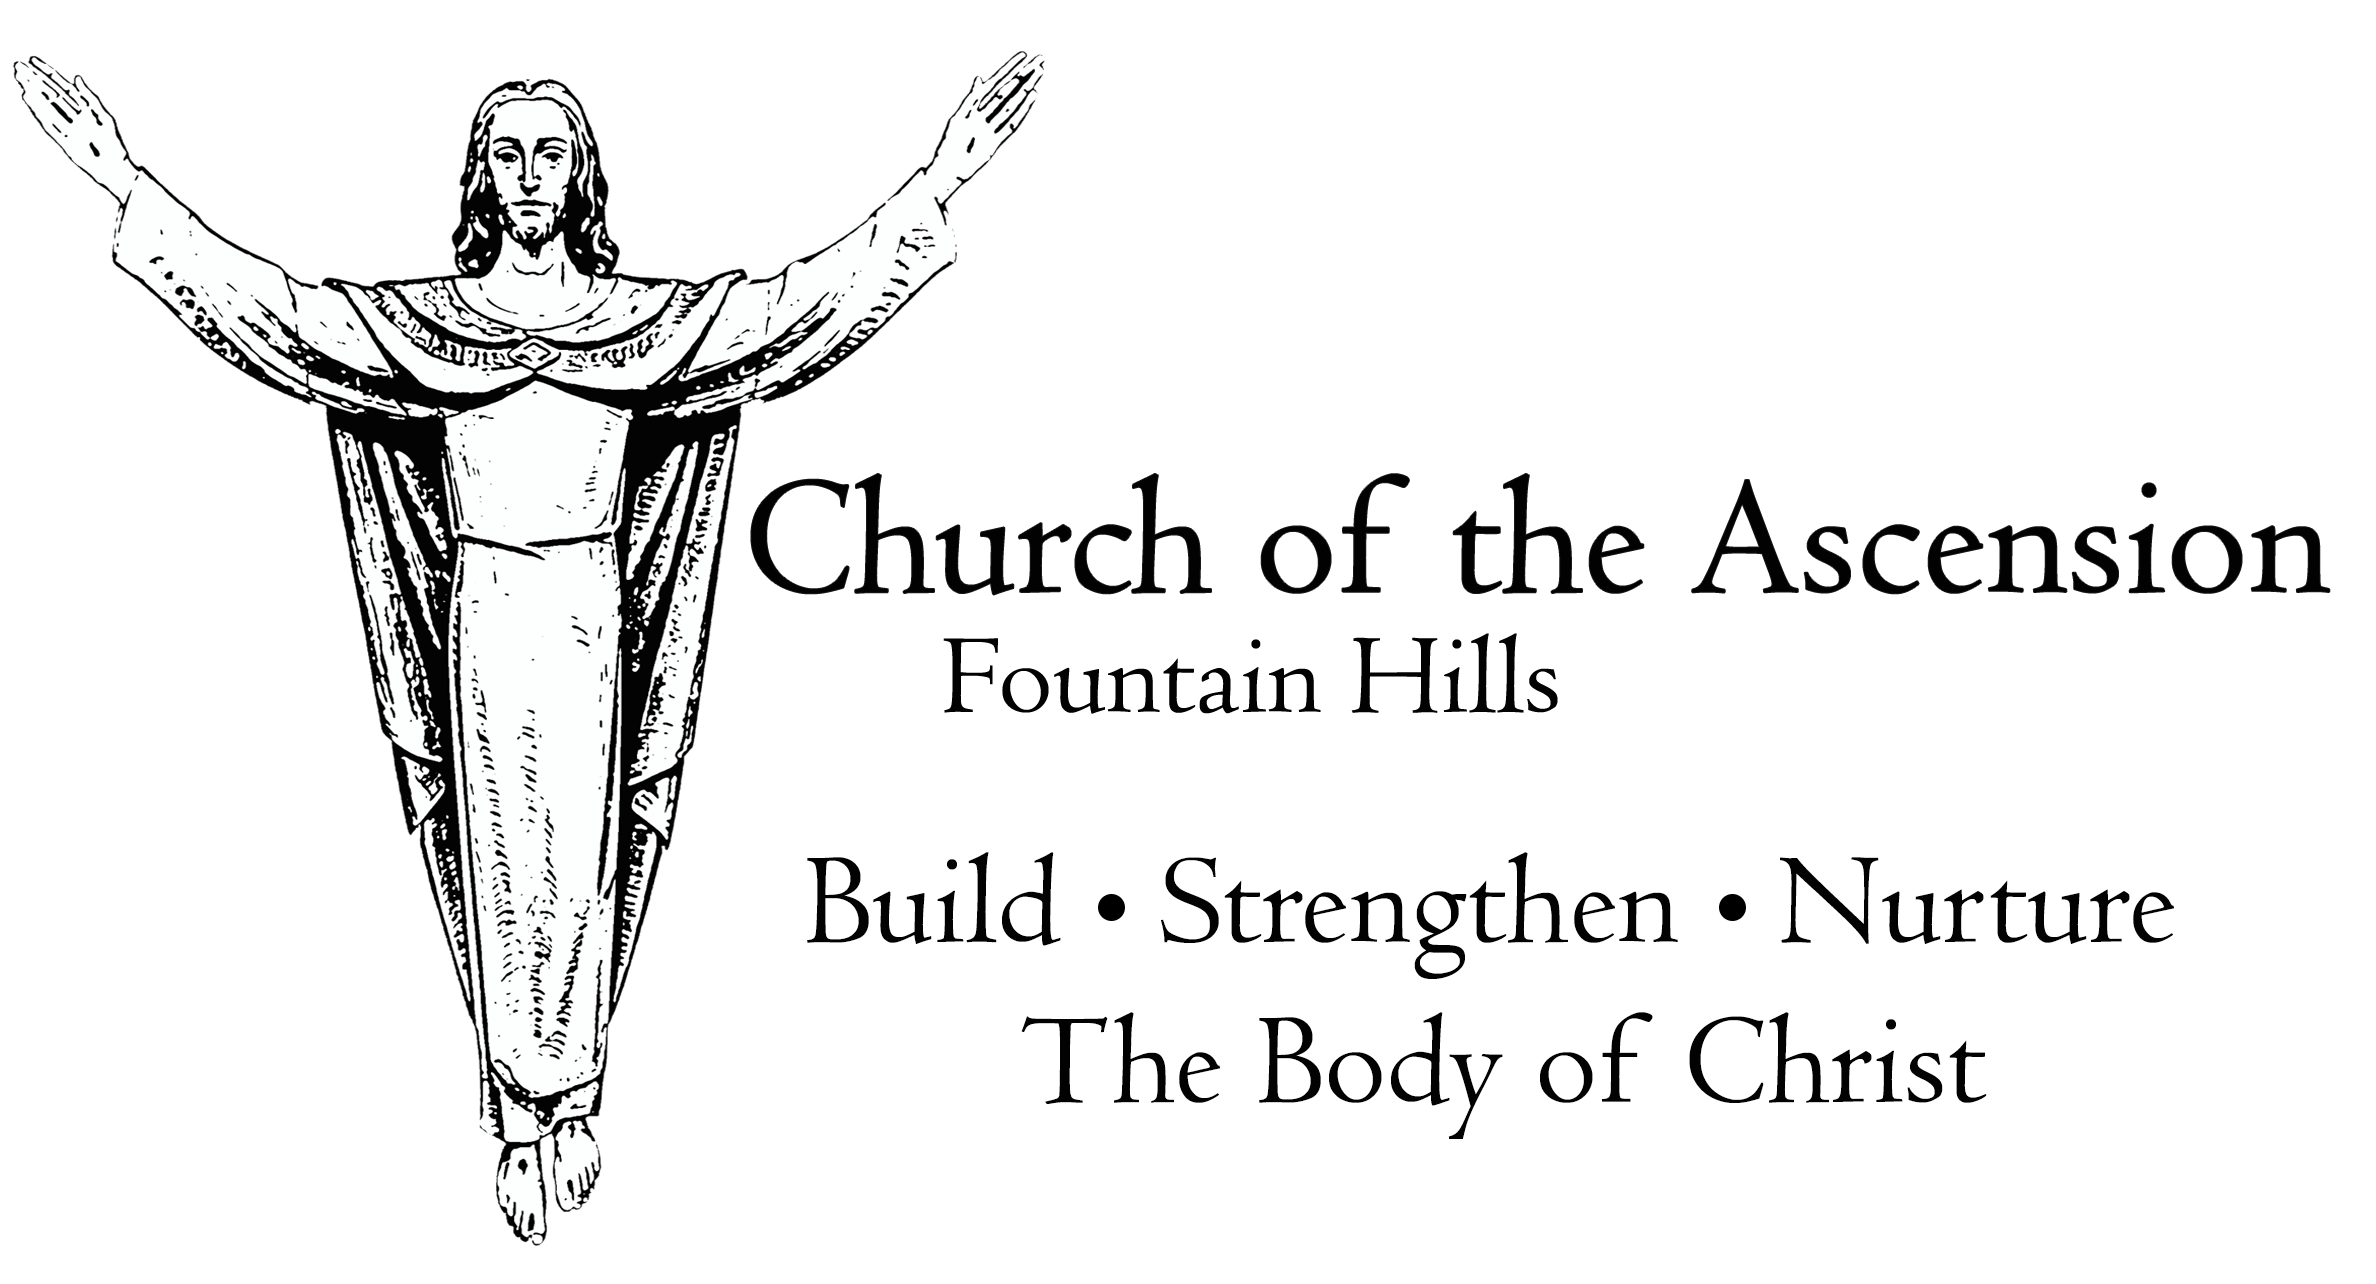 Church of the Ascension Fountain Hills